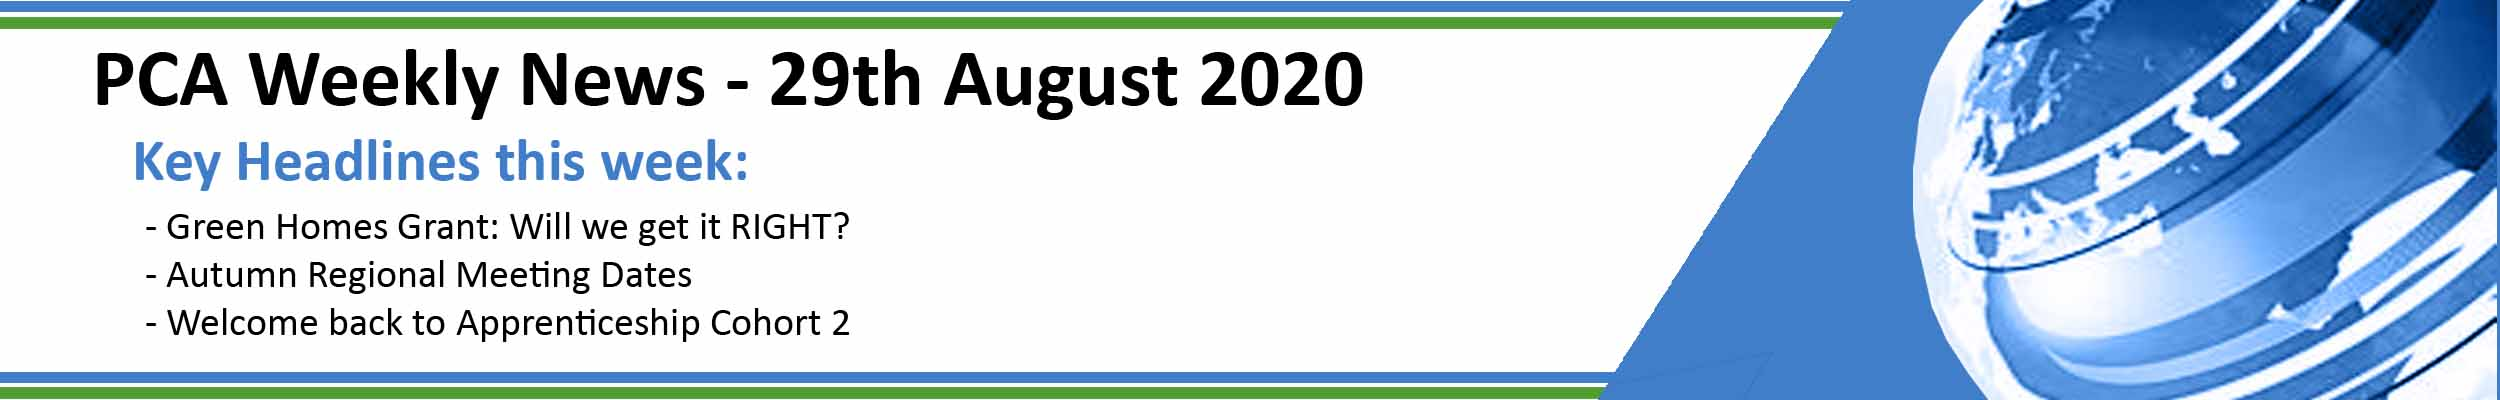 PCA Weekly News - 29th August 2020